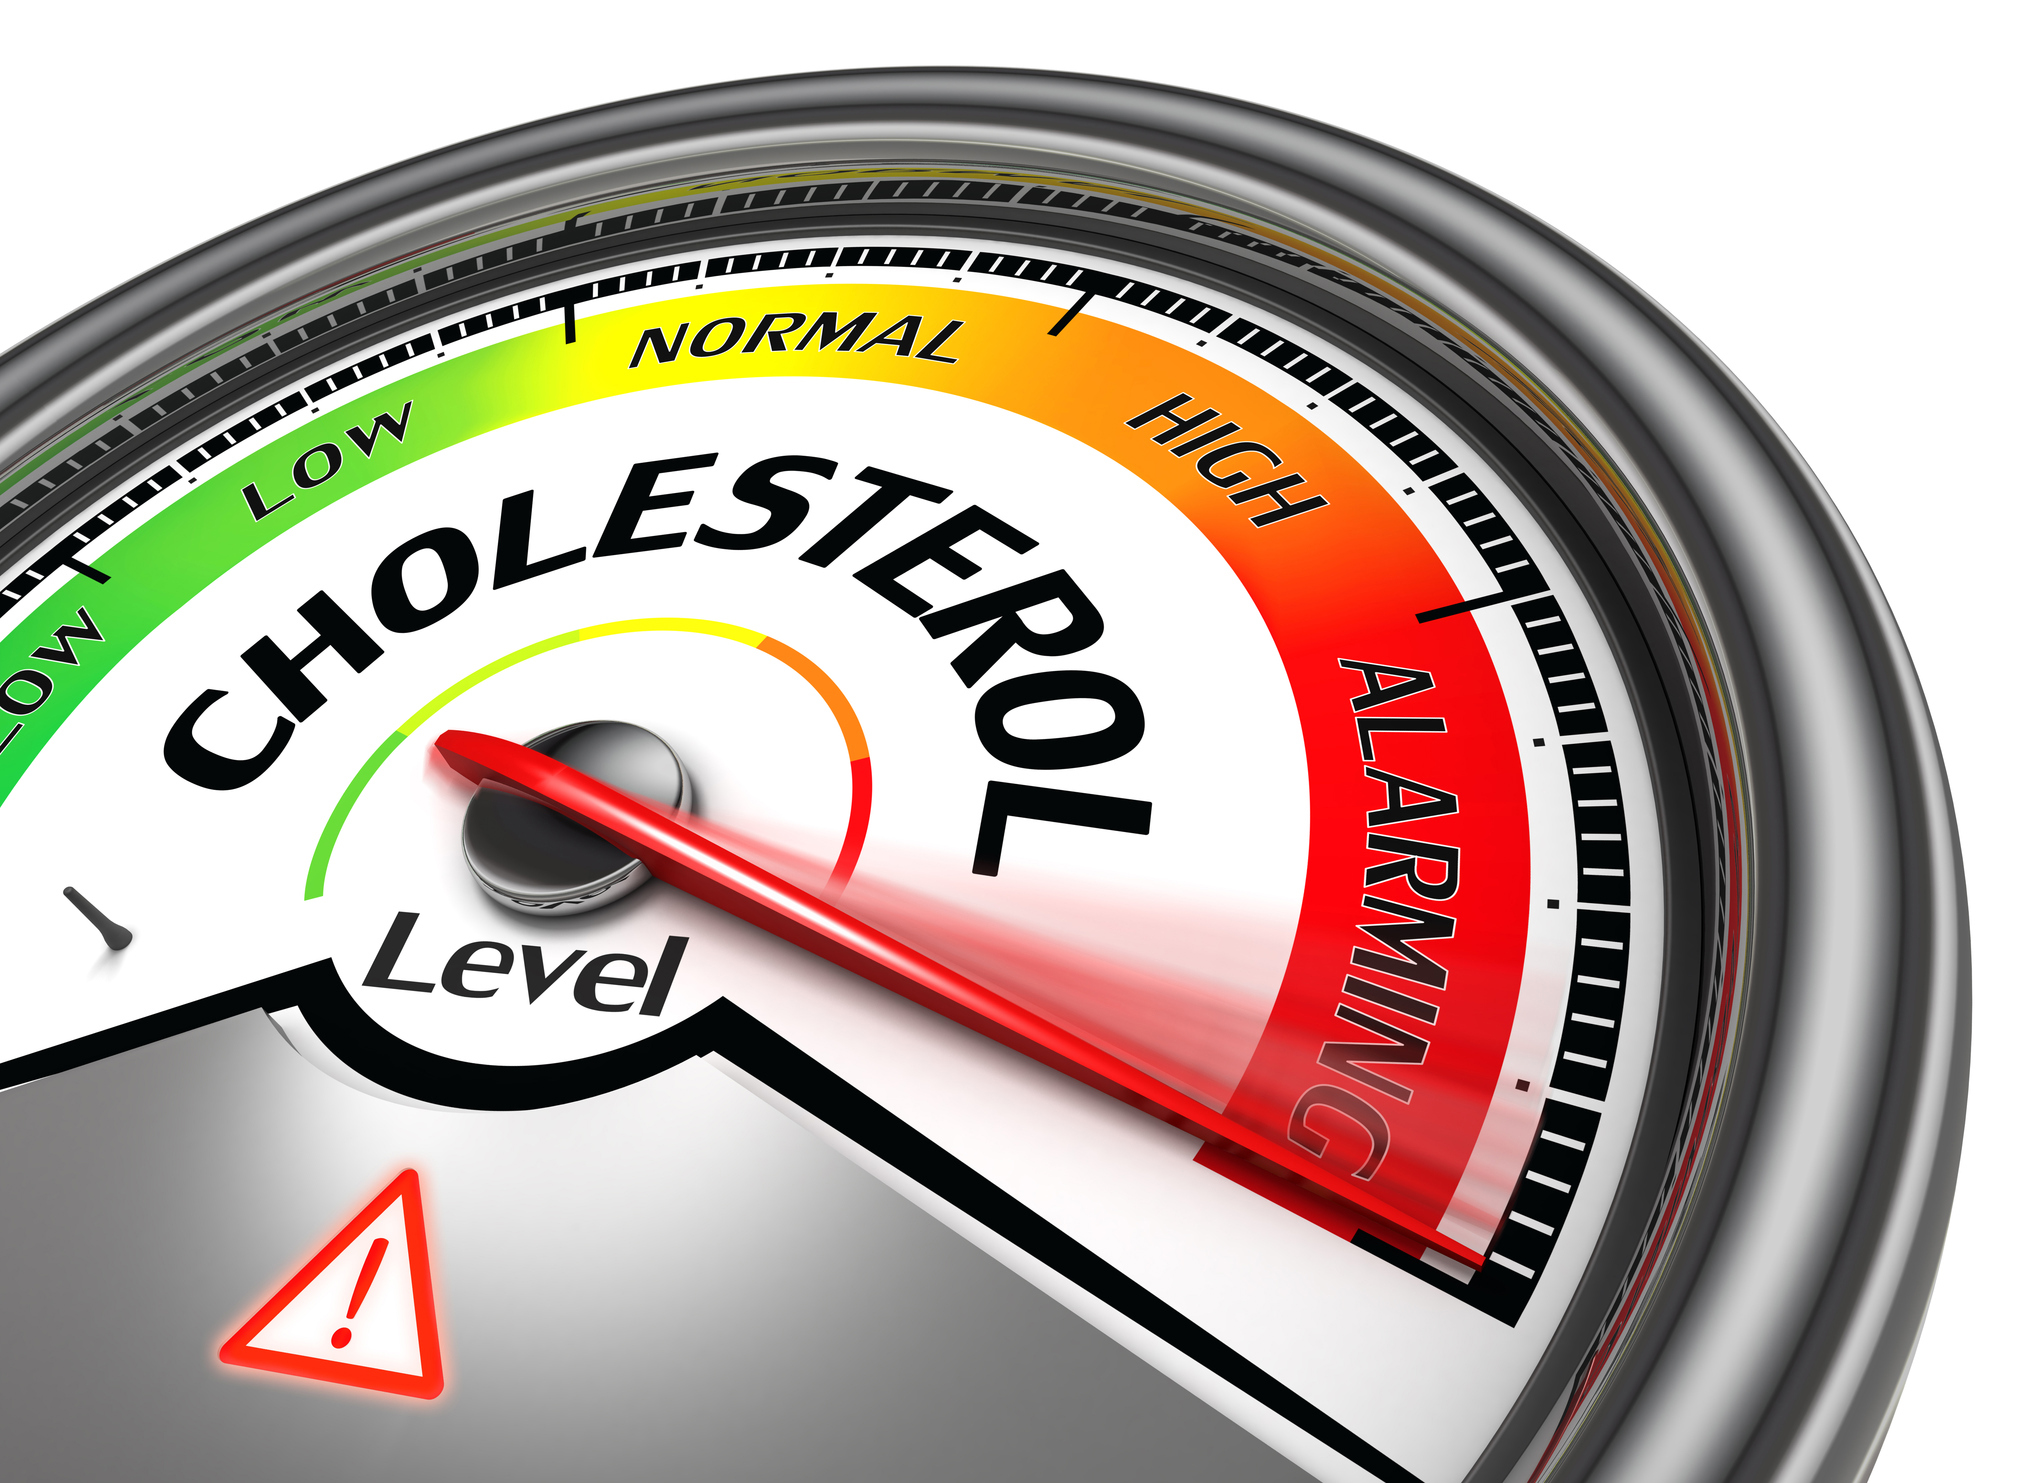 Cholesterol illustration.